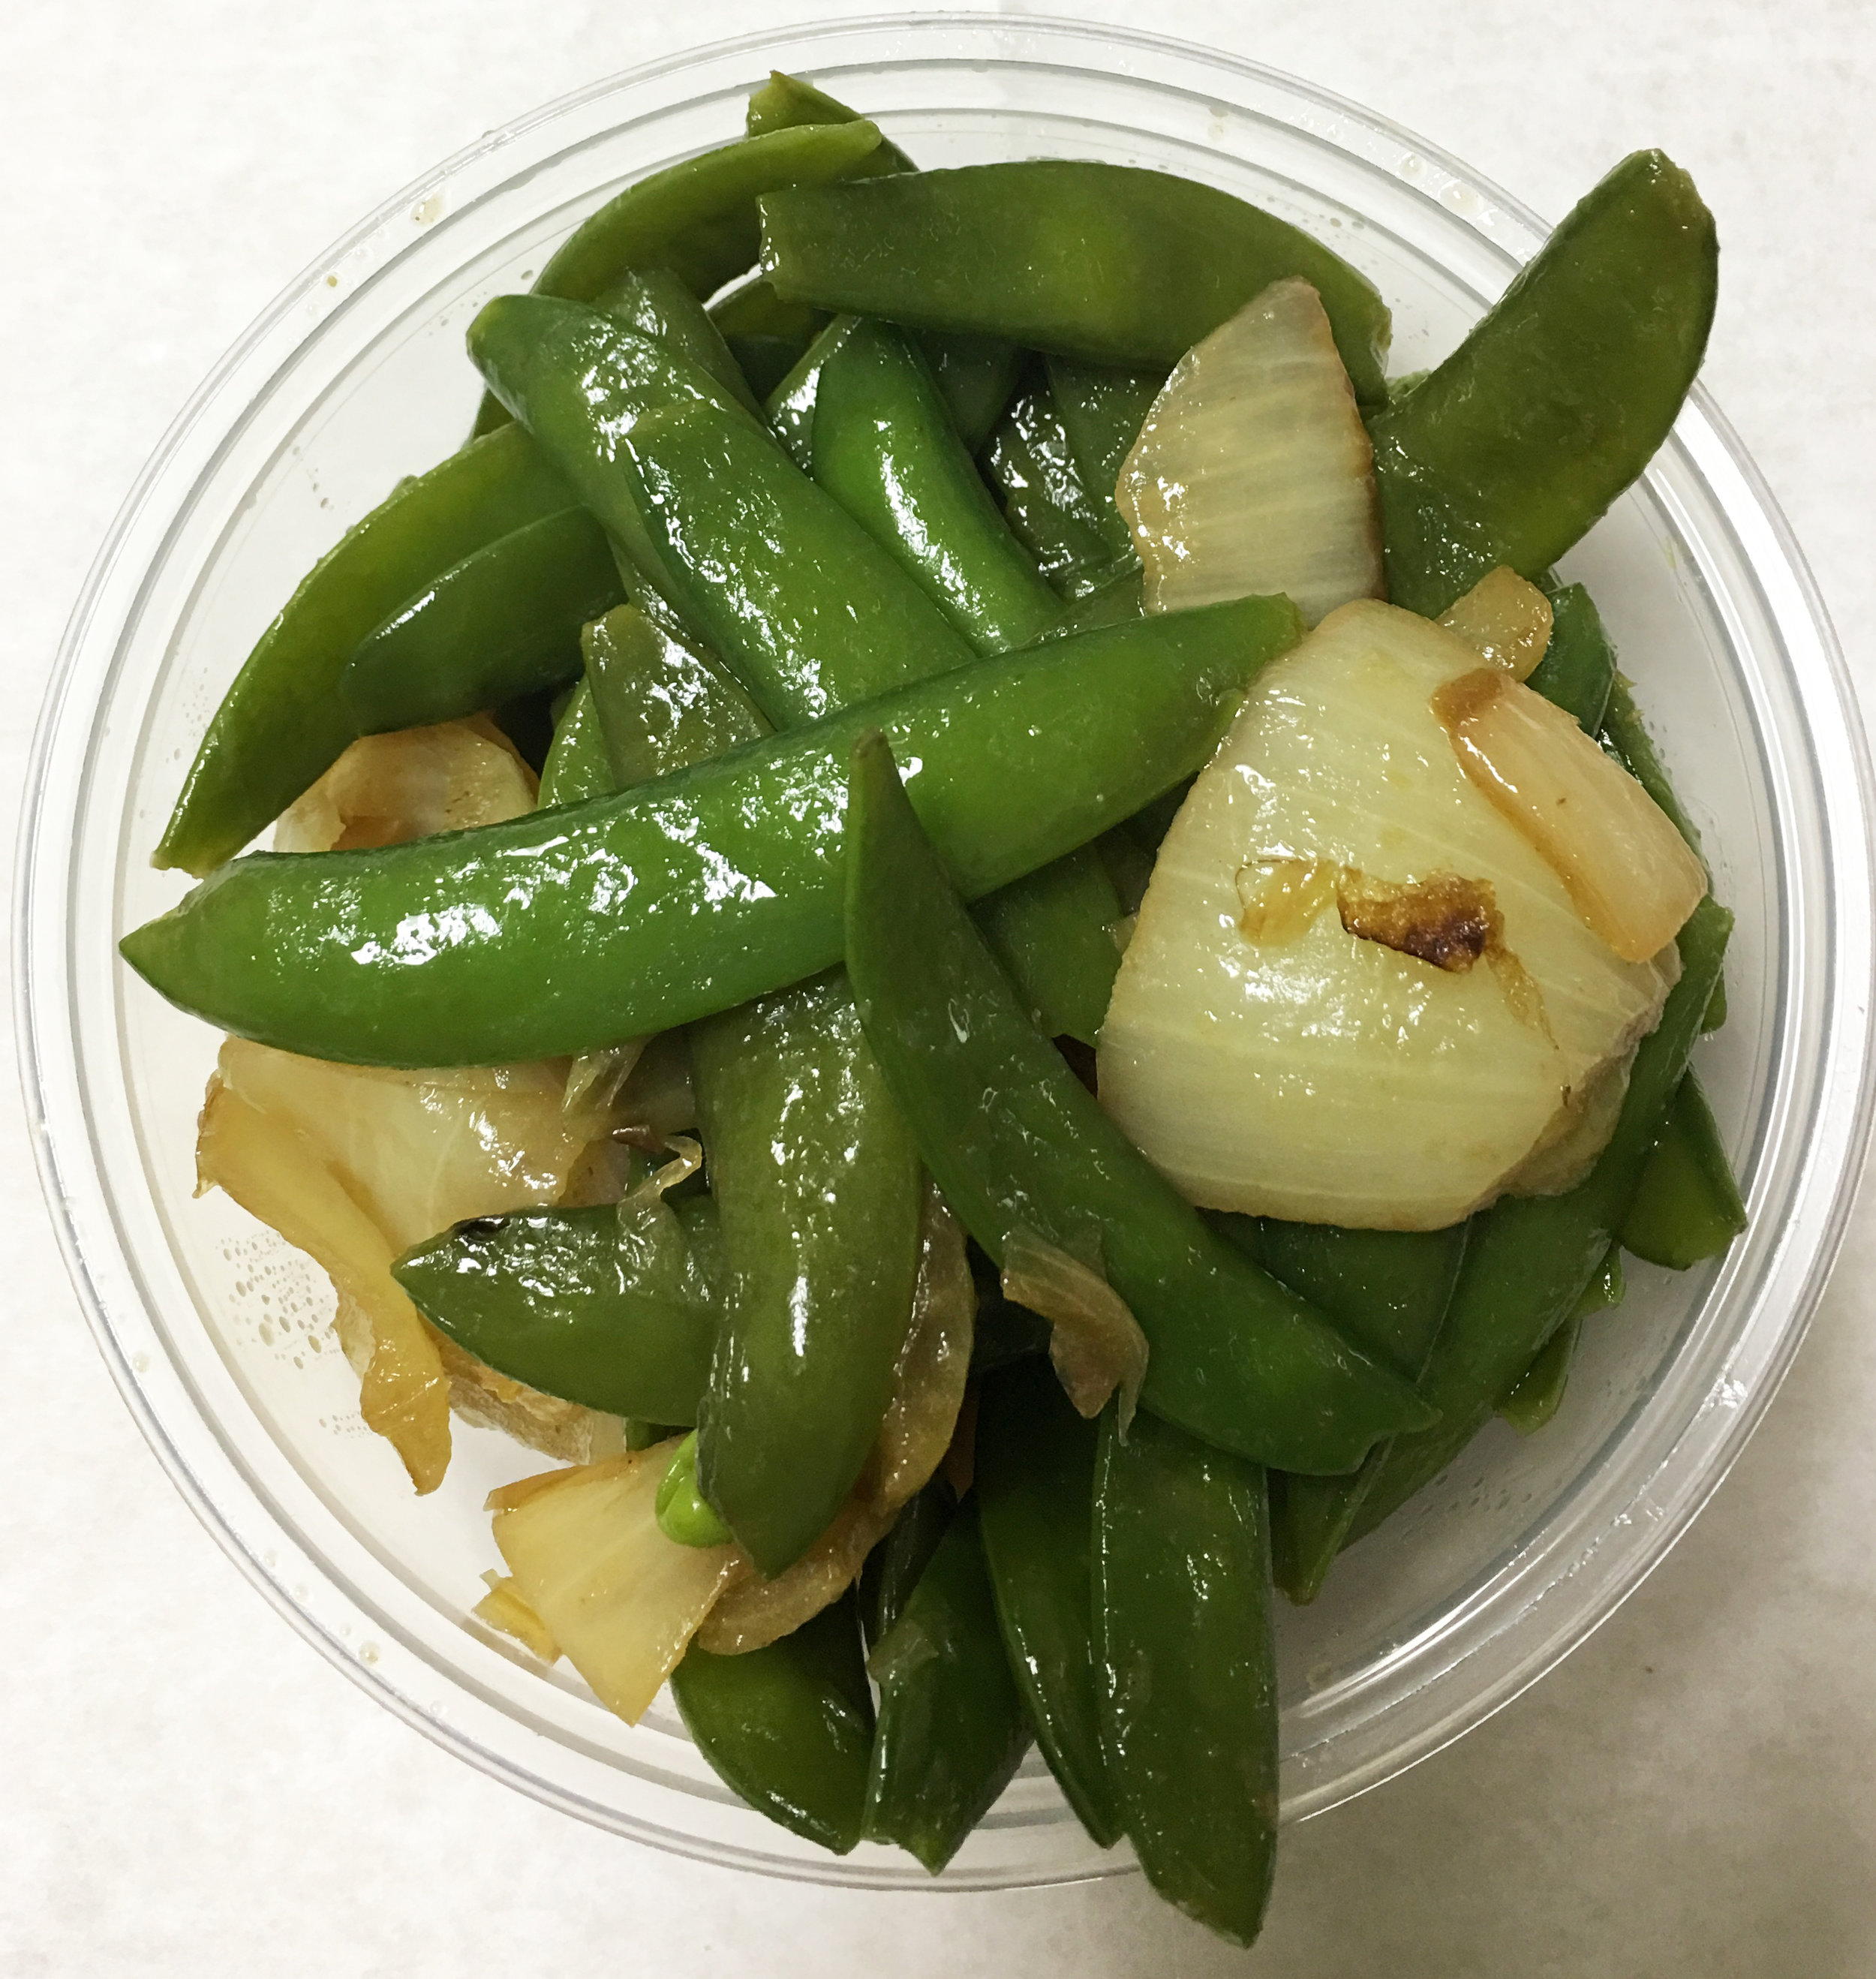 Sauteed snap peas with onions and a mustard marinade.